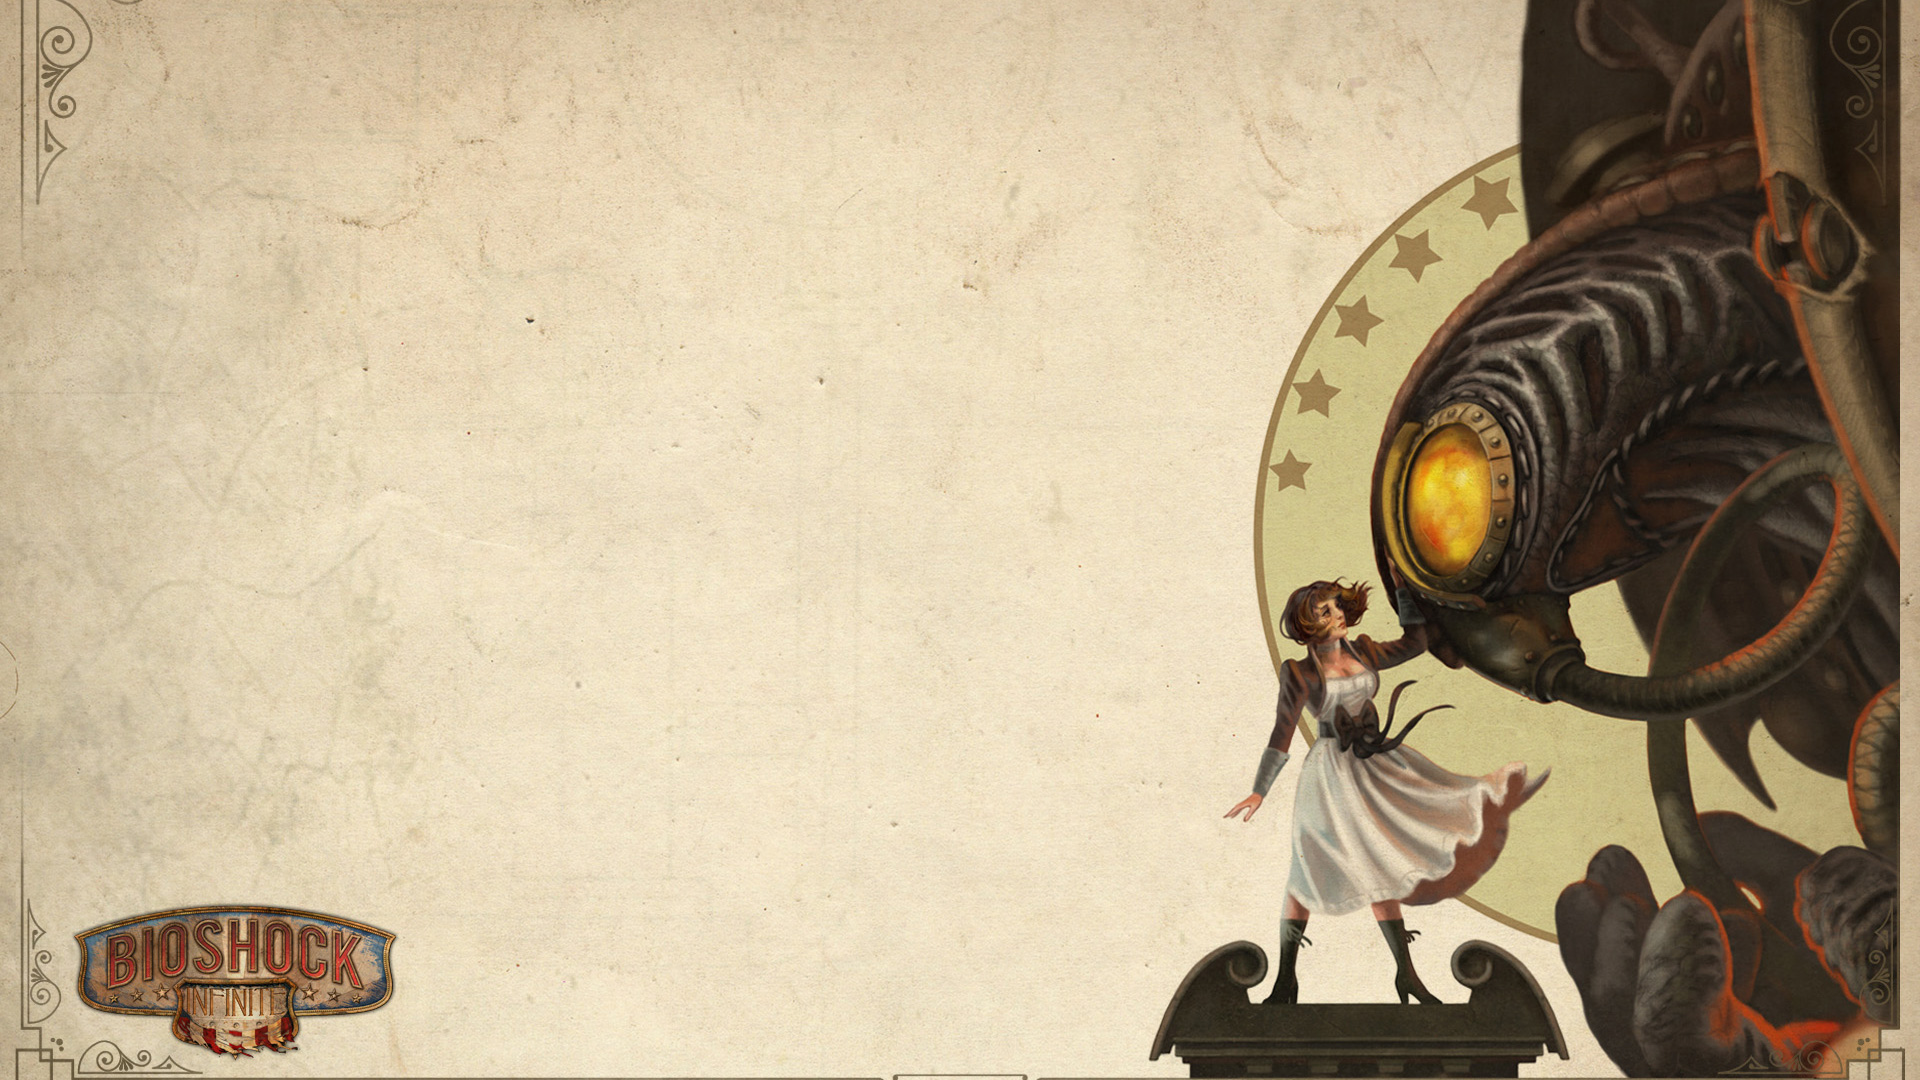 Free Bioshock Infinite Wallpaper in 1920x1080